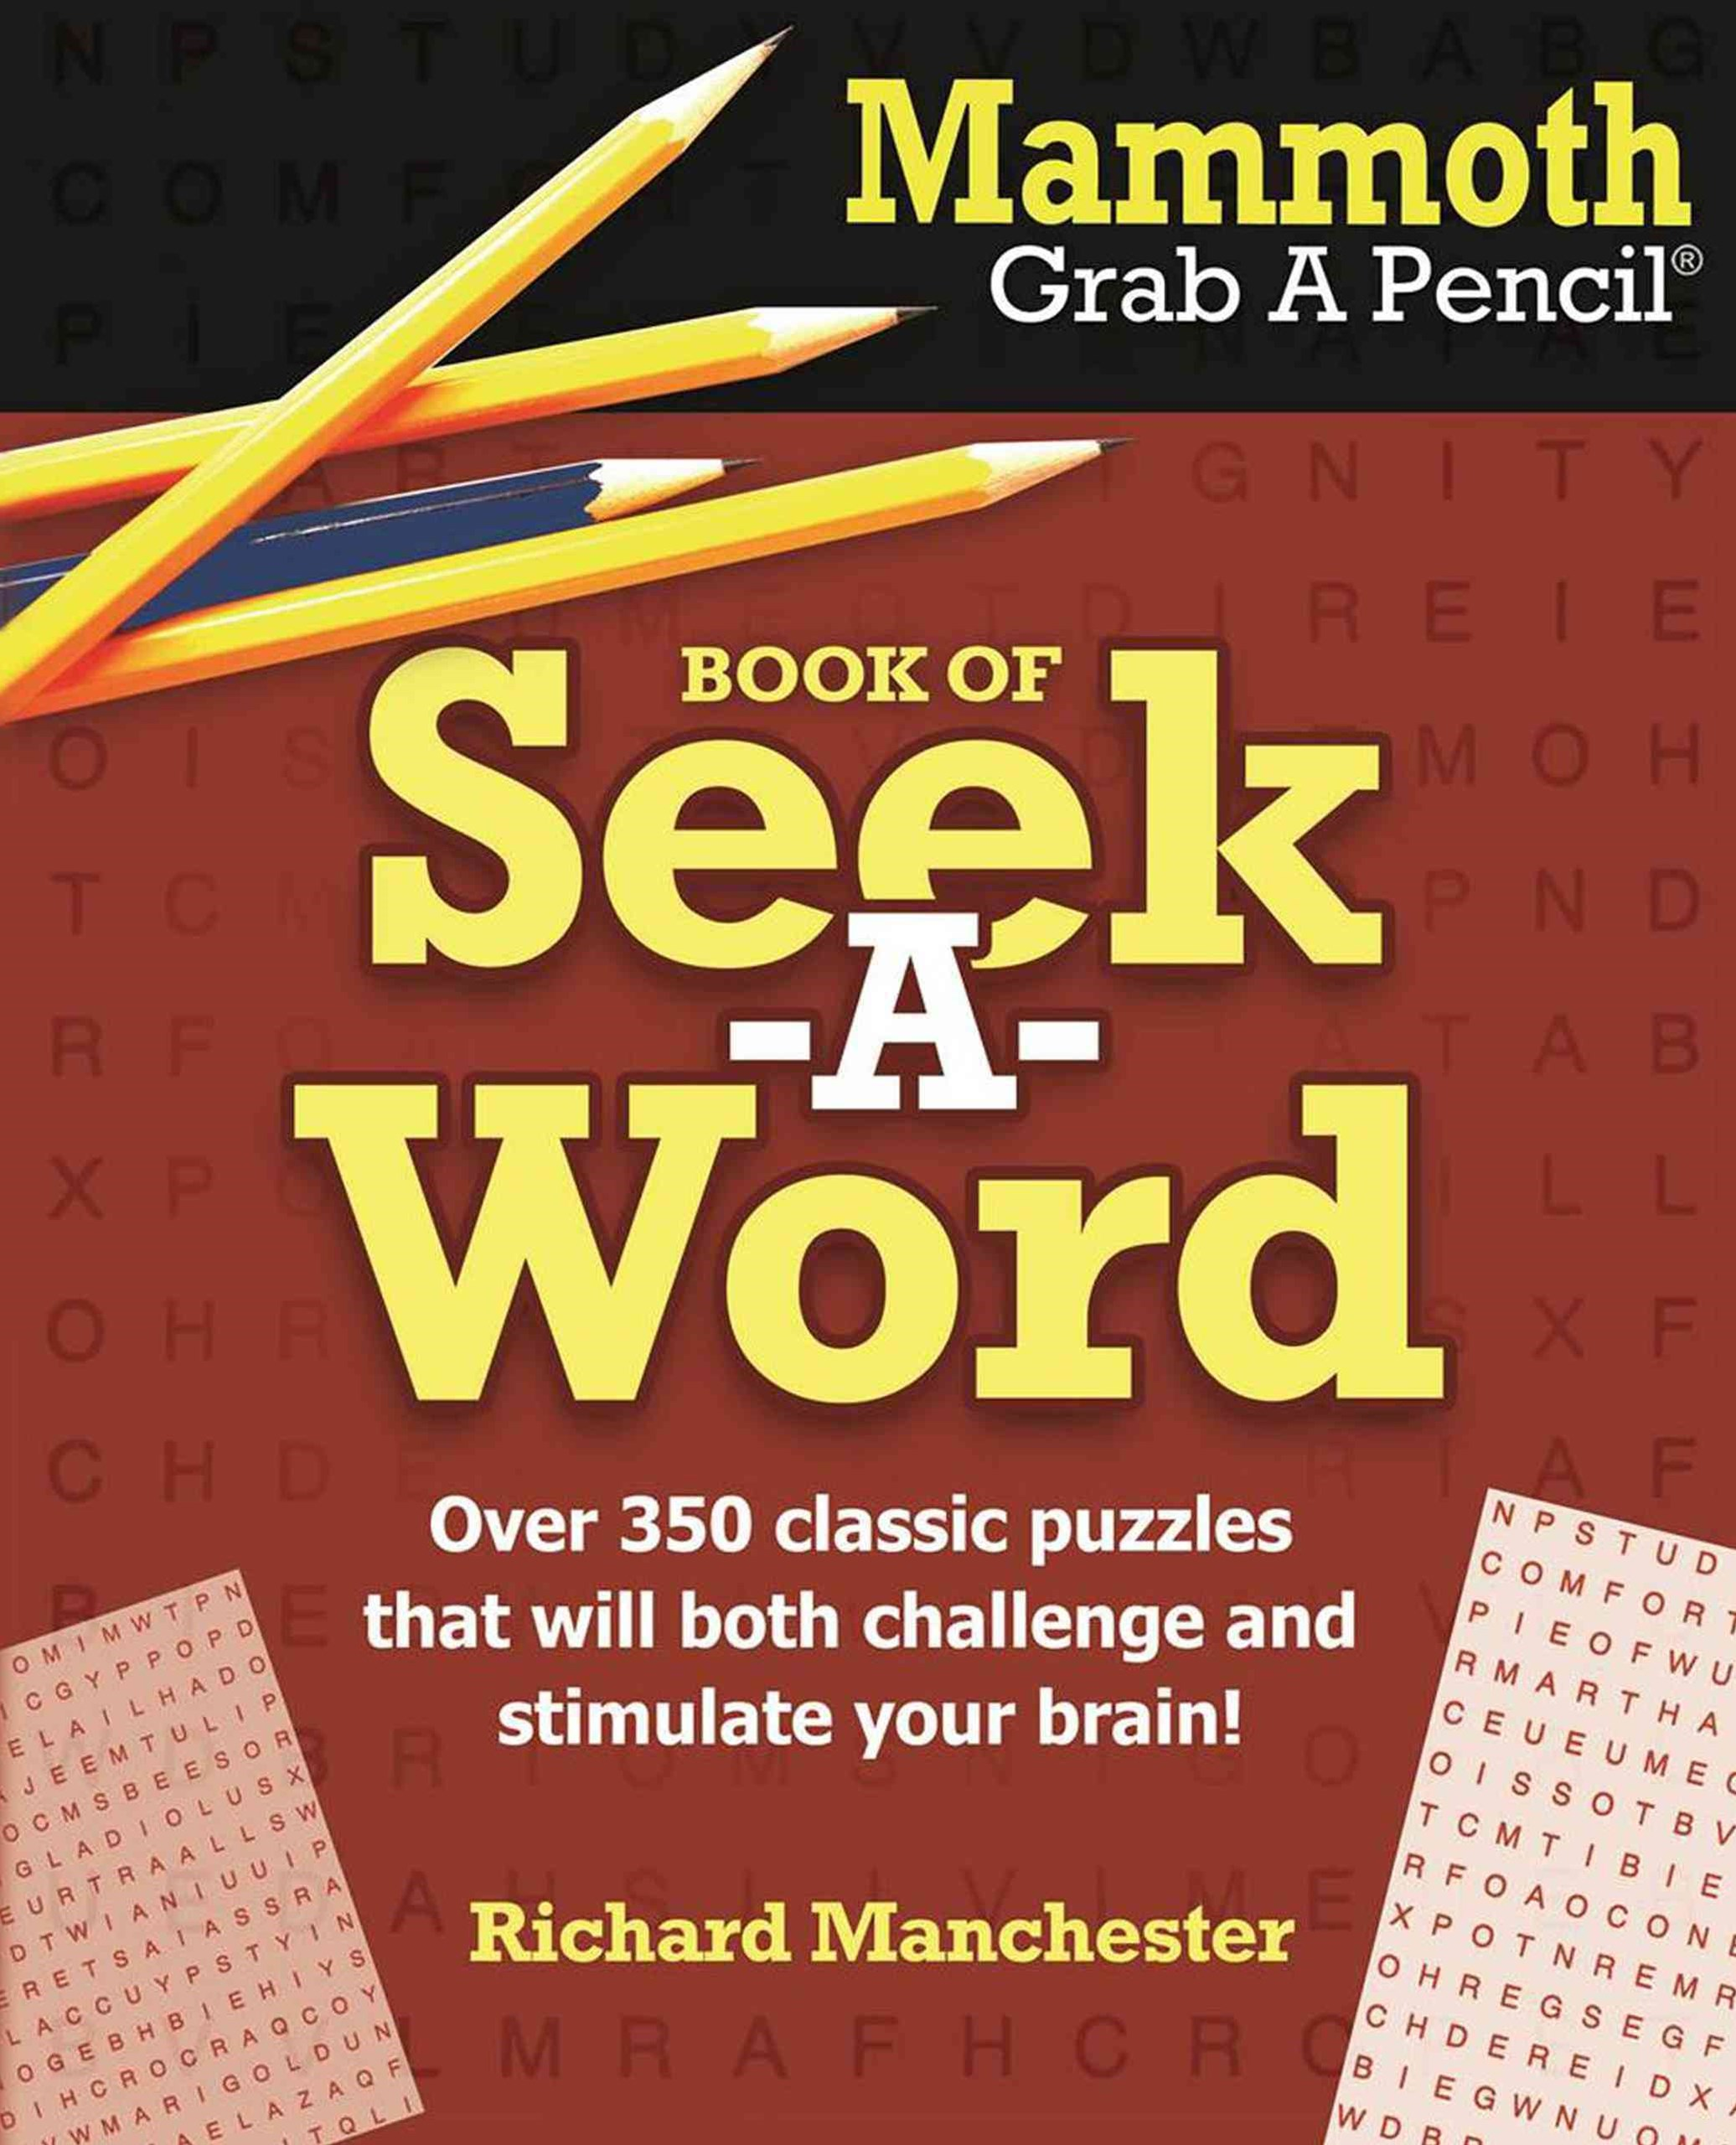 Mammoth Grab a Pencil Book of Seek-A-Word